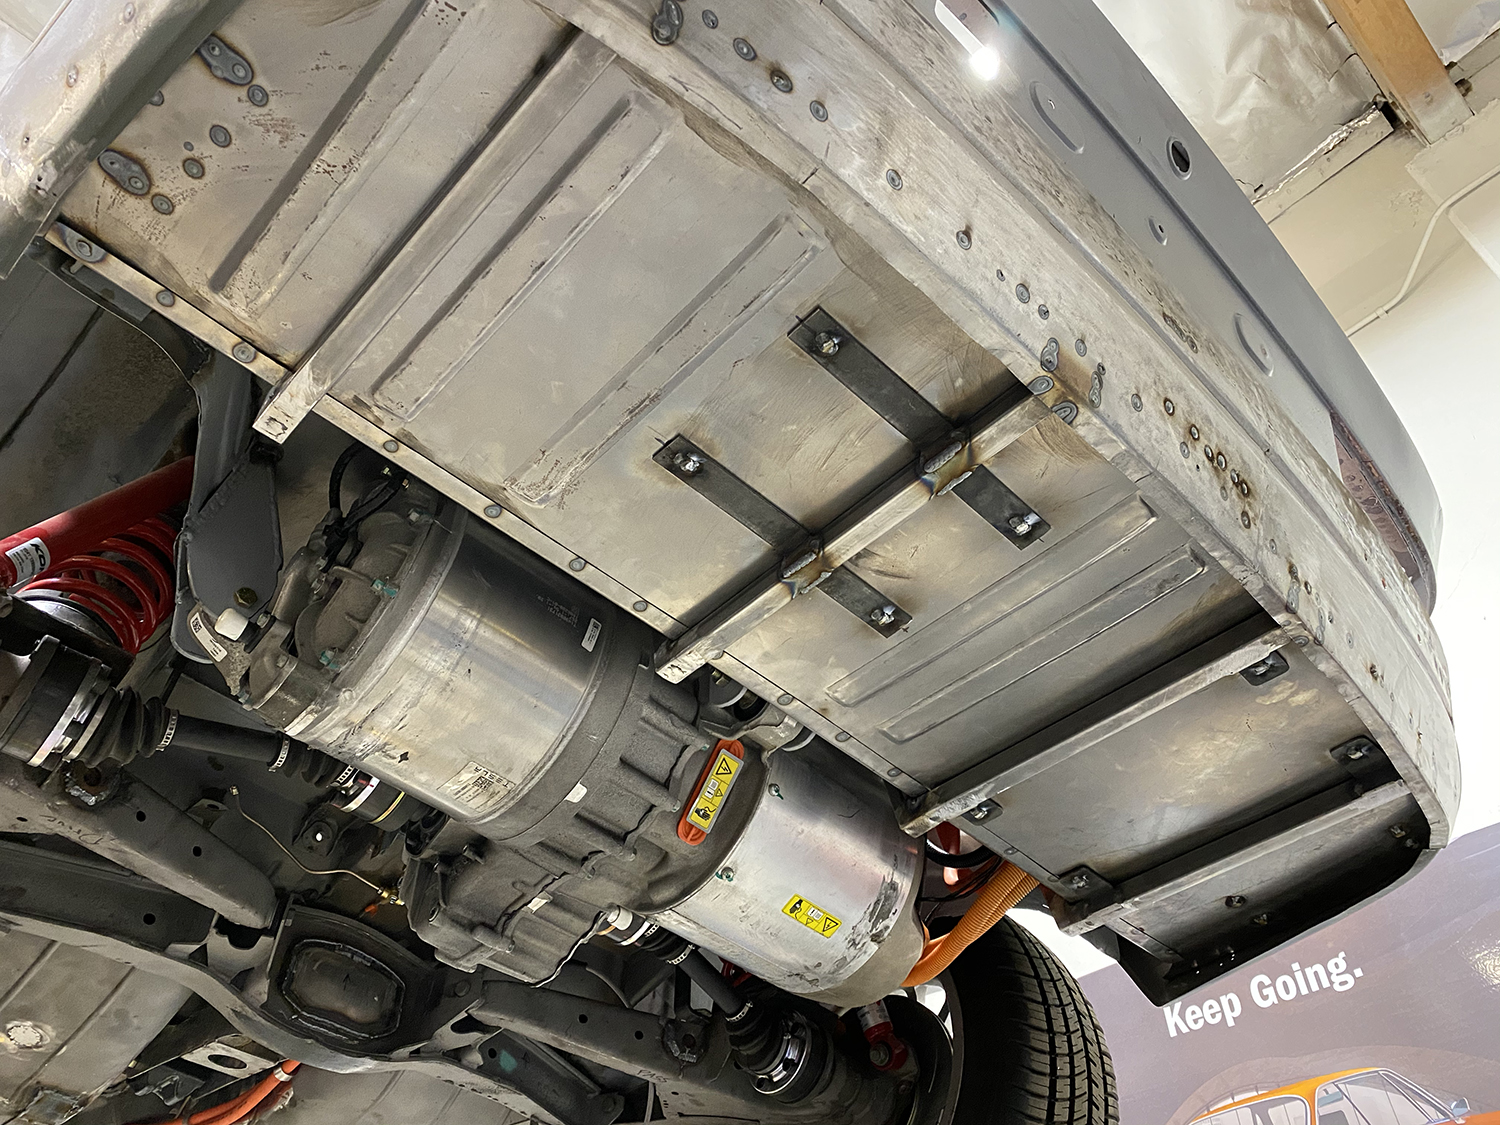 Here is the trunk from under the car. The motor now feels like it has a home, rather than hanging there exposed.